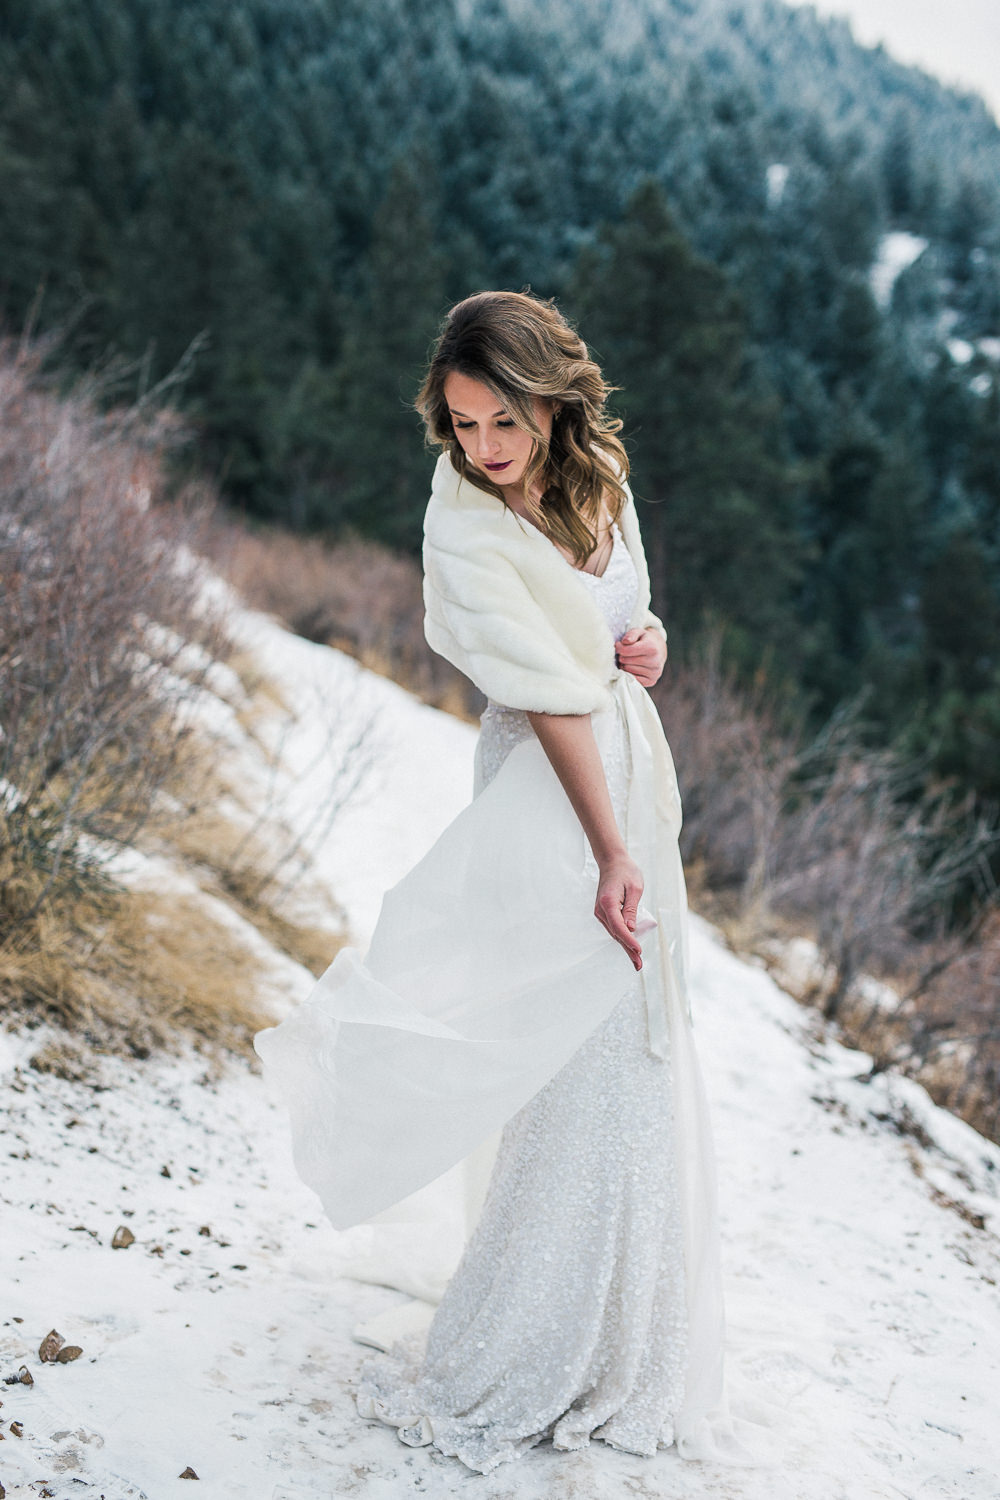 Emma and Grace bridal studio winter wedding dress fur shawl elopement inspiration